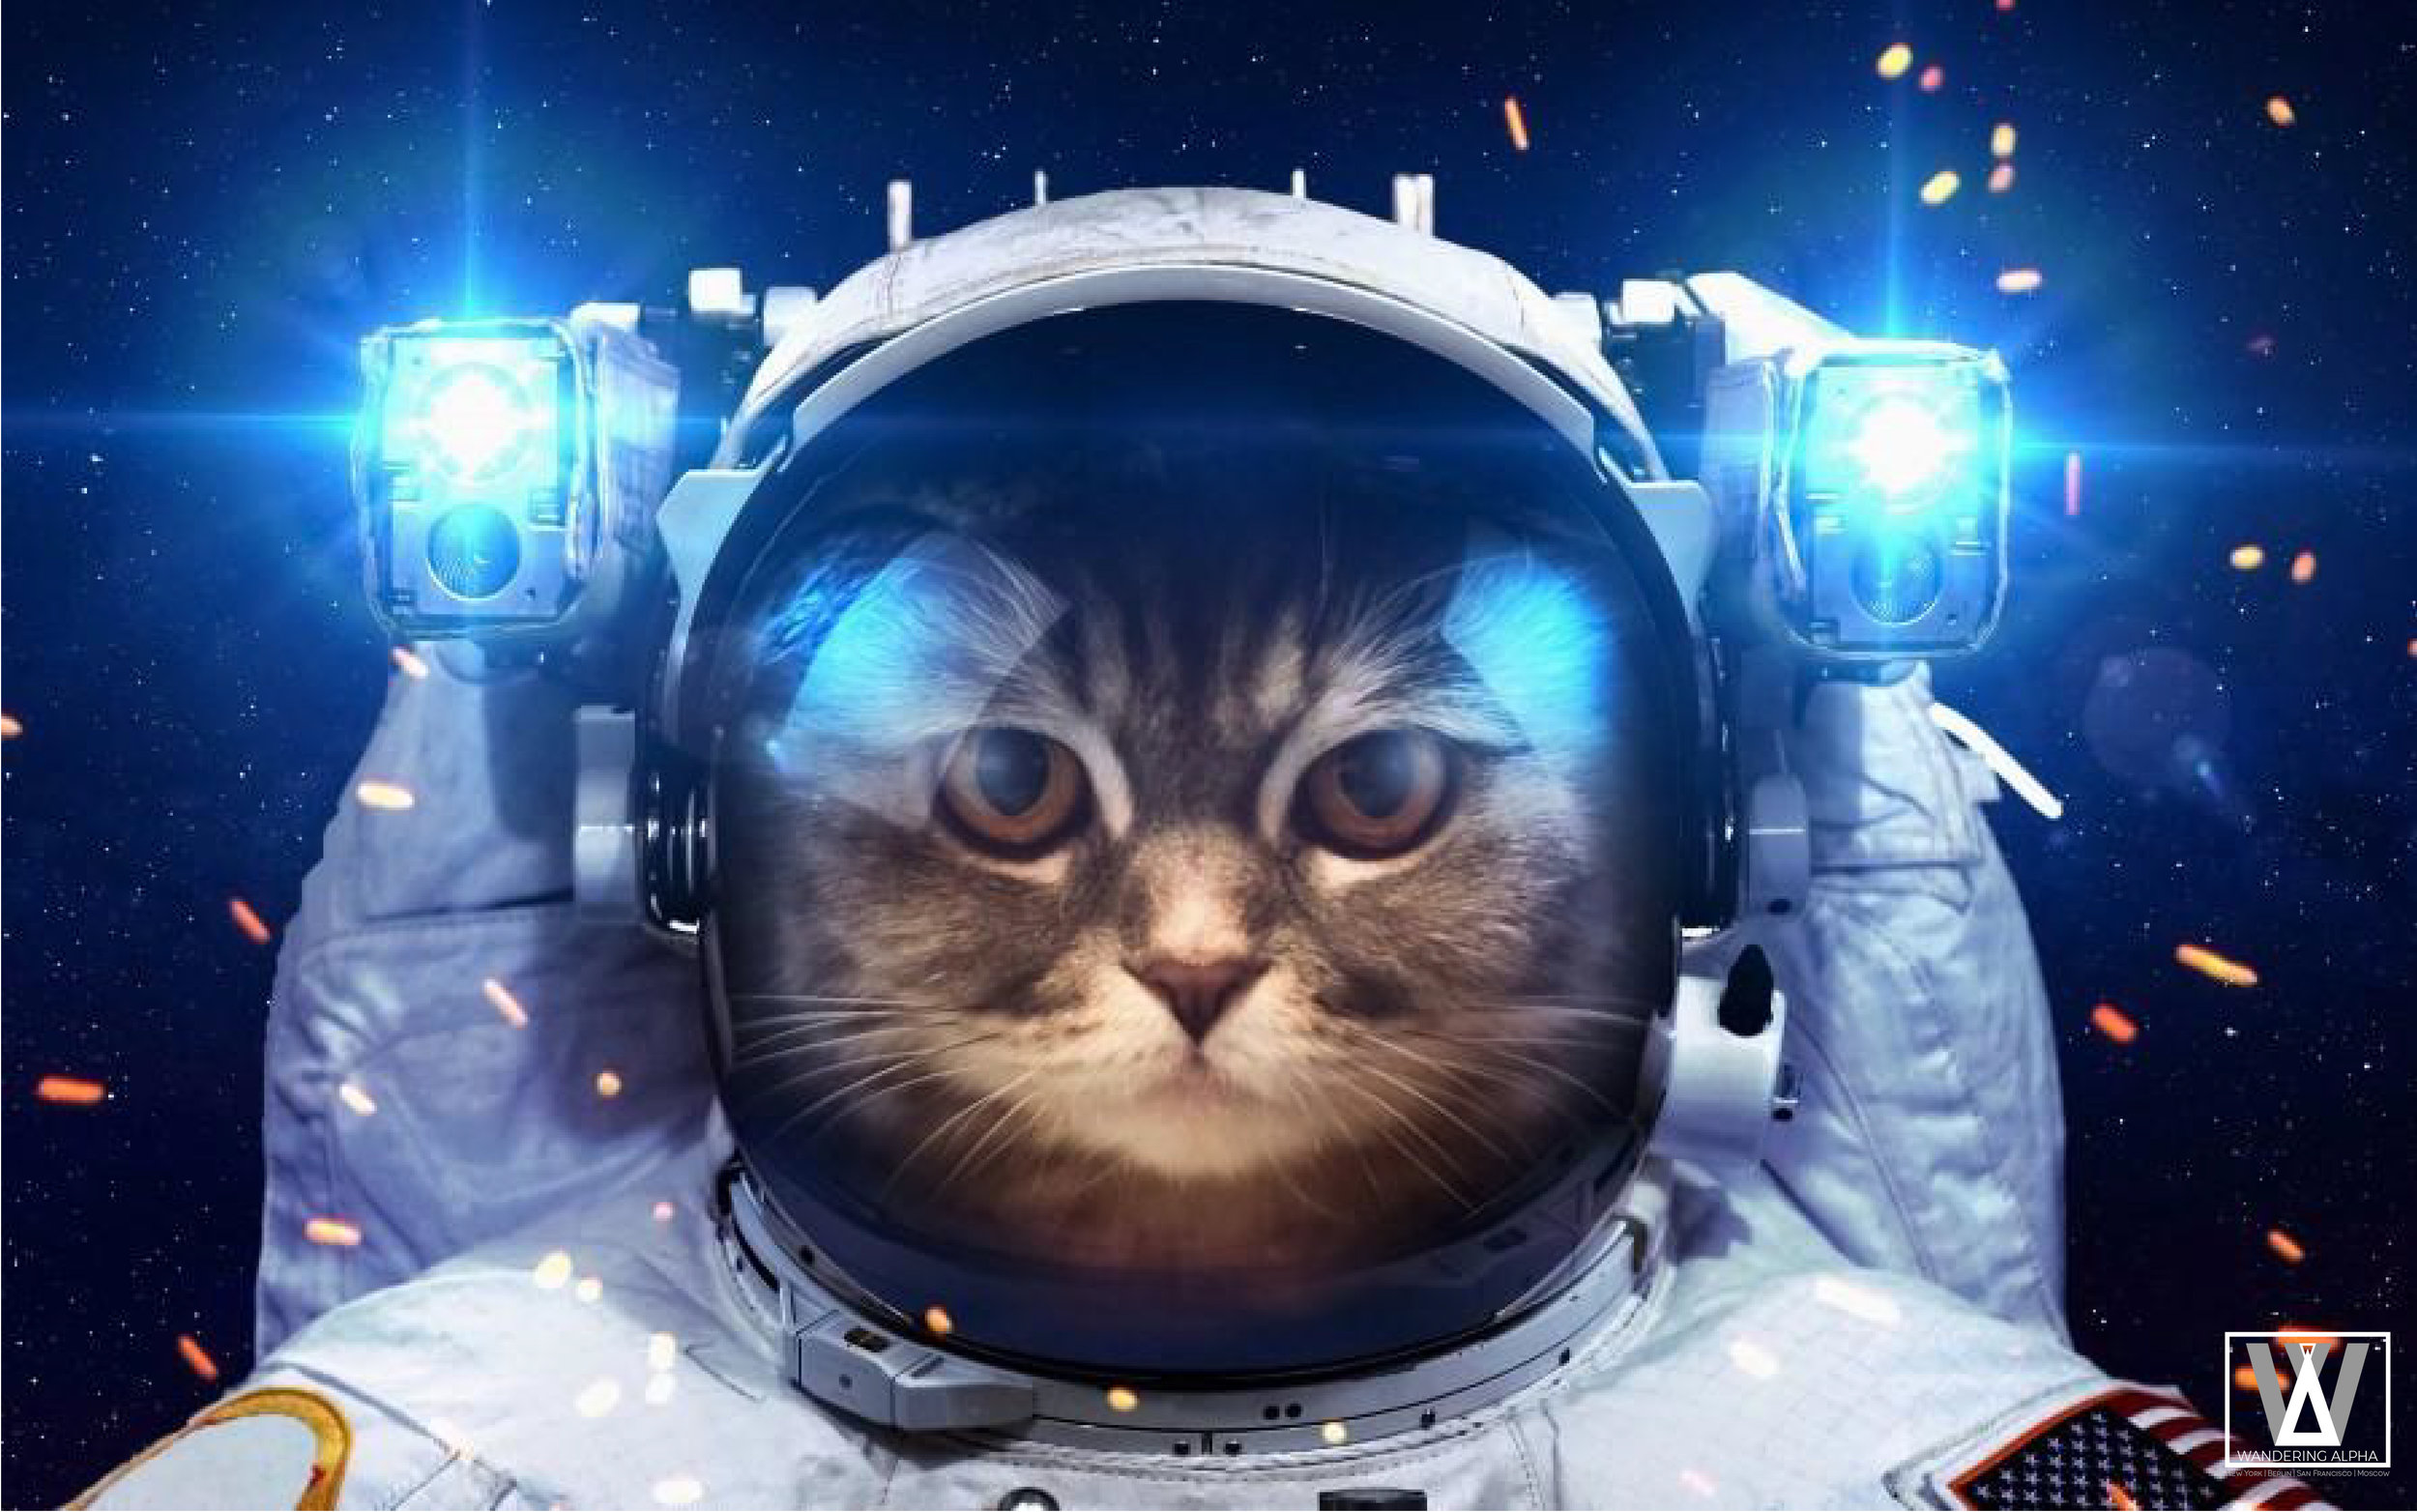 cat_astronaut_spacesuit_lanterns_light_space_animal_humor_1024x1024-01.jpg